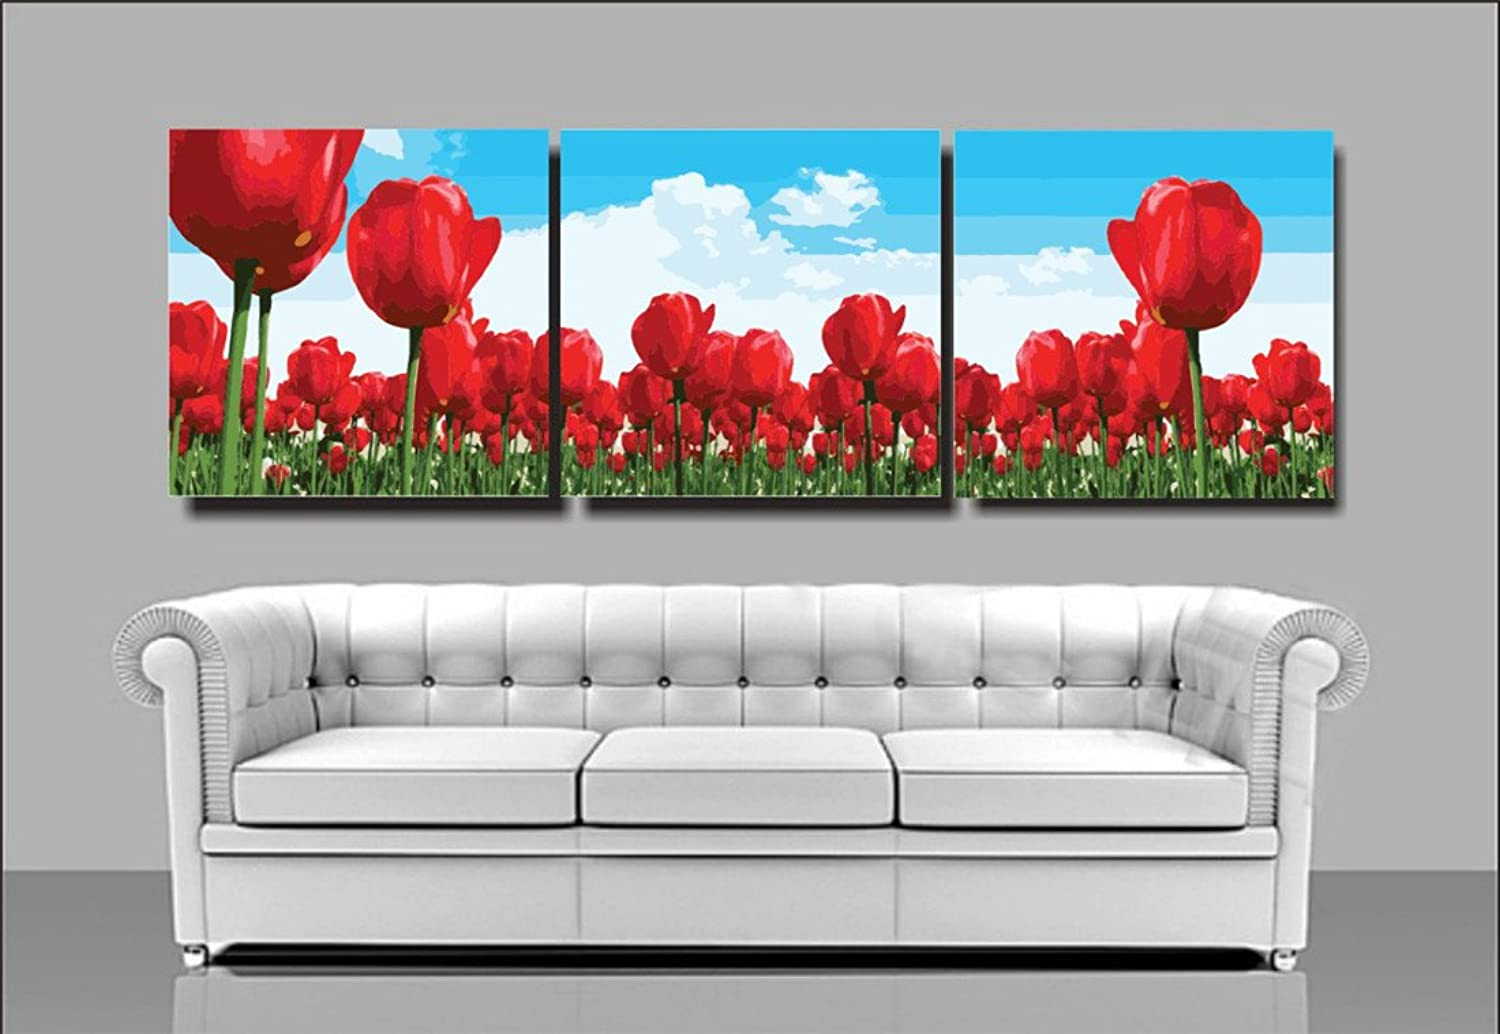 YEESAM ART New Paint by Numbers for Adults 3 Piece Pack Panel  Red Tulips Flowers 20x20 inch Linen Canvas  DIY Painting Three Pieces Multipack Wall Art (Without Frame)